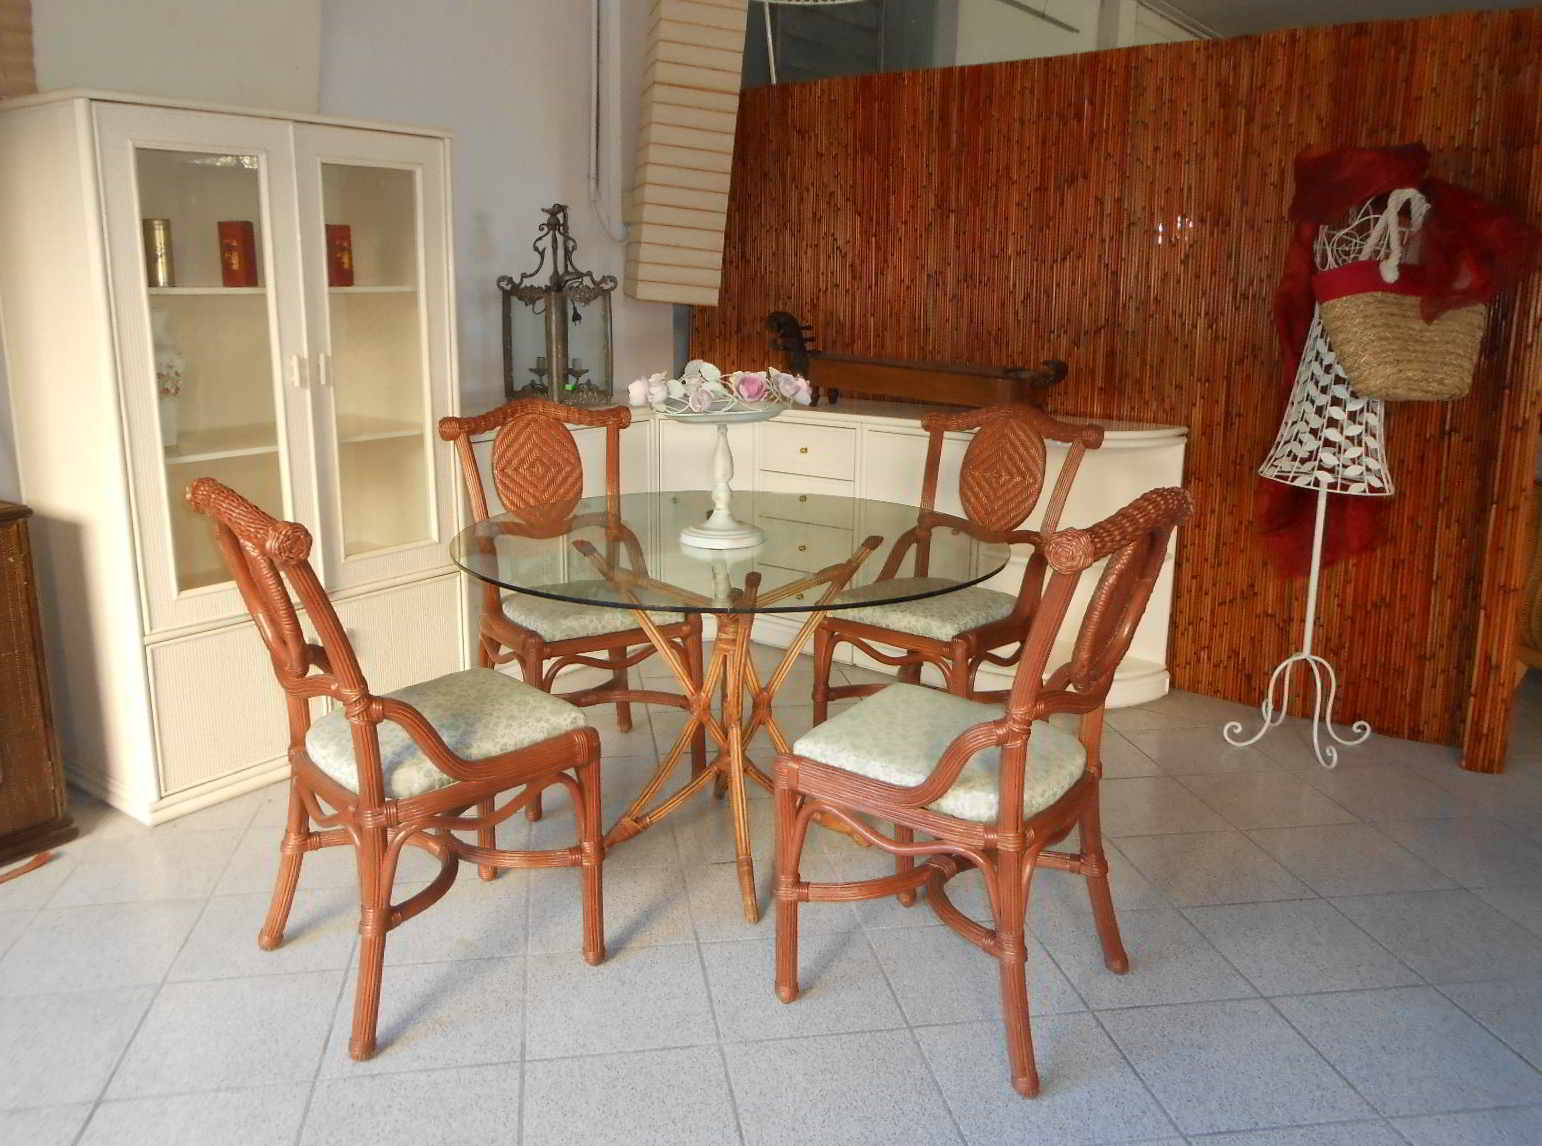 Ikea Glass Dining Table 4 Chairs 1 Year Old For Sale In Indus Ikea  #703217 1542 1146 Piani Di Lavoro Cucina In Laminato